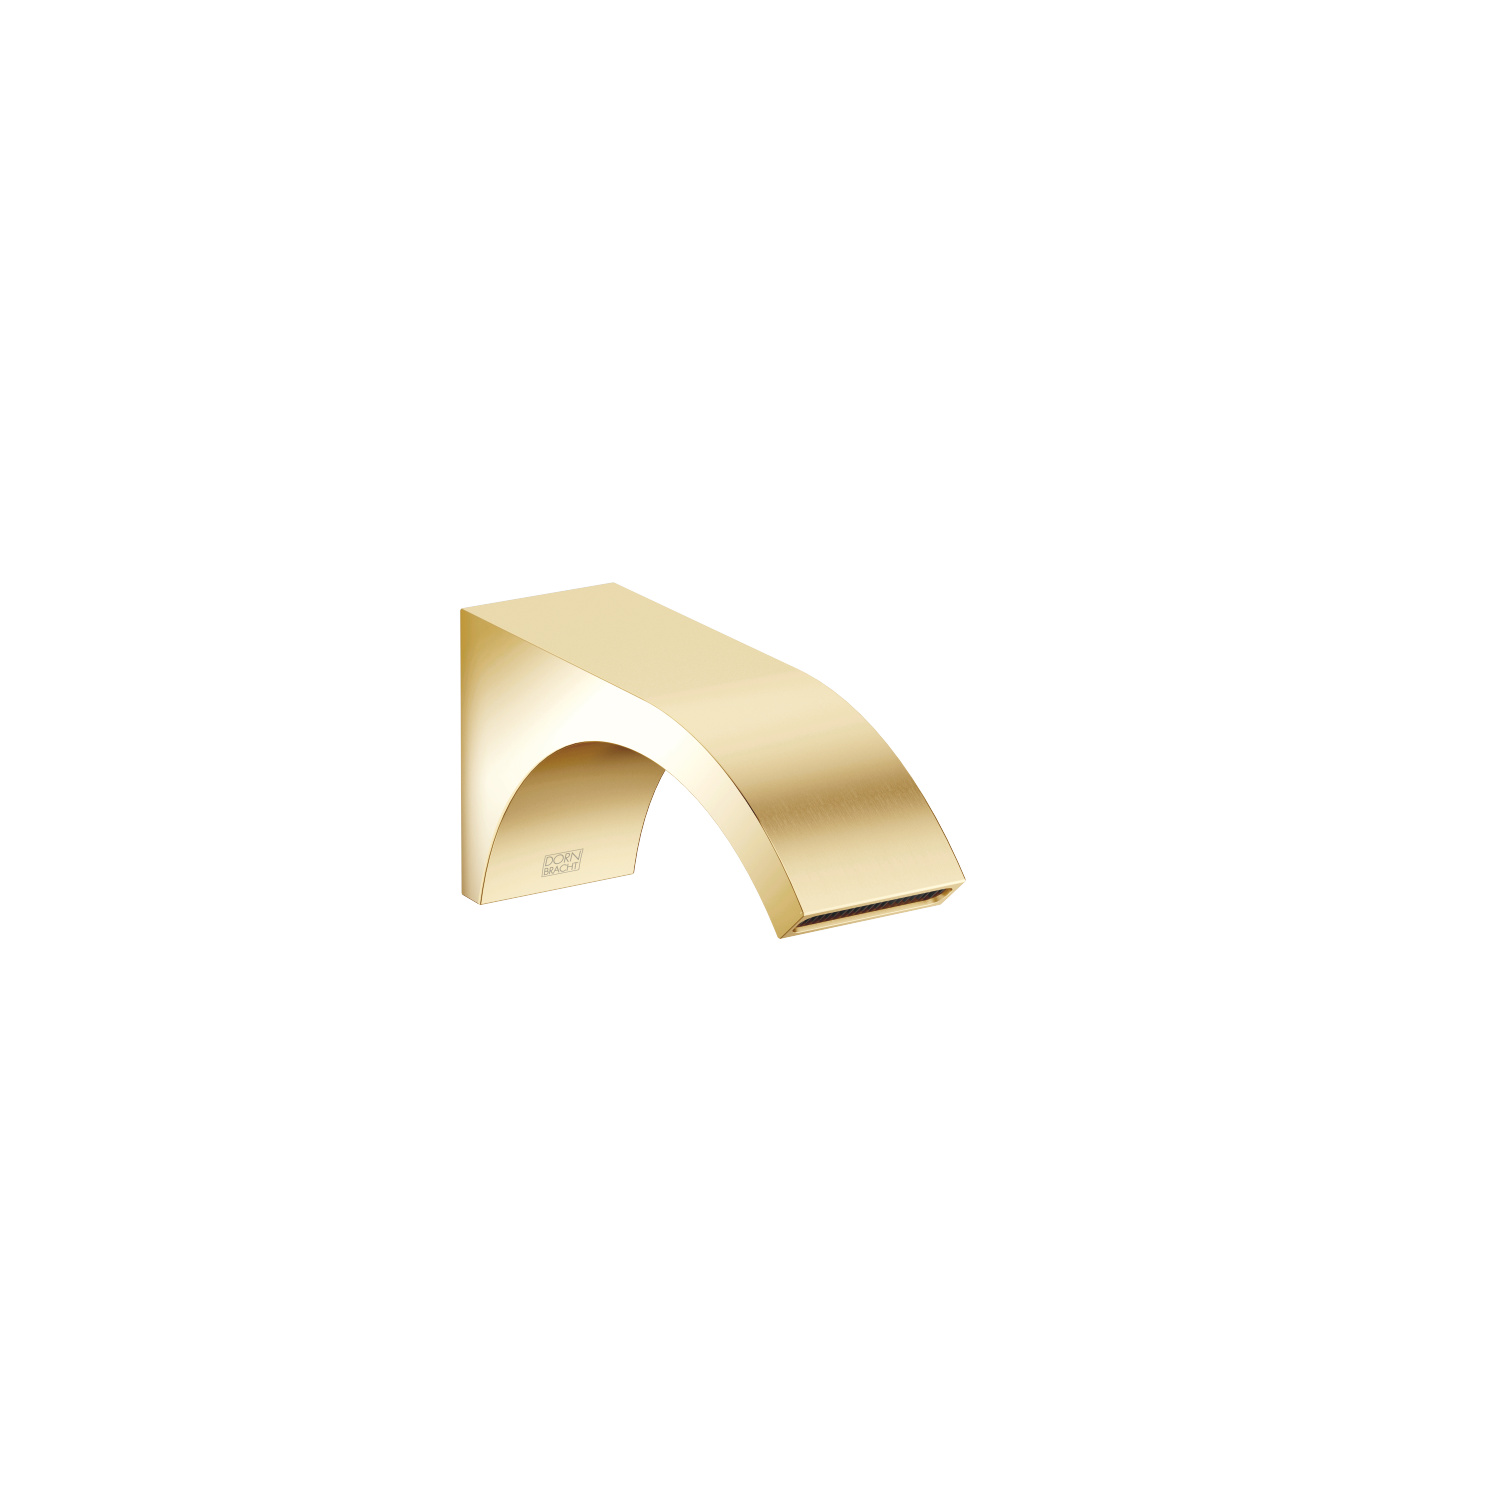 Wall-mounted basin spout without pop-up waste - Durabrass / brushed Durabrass